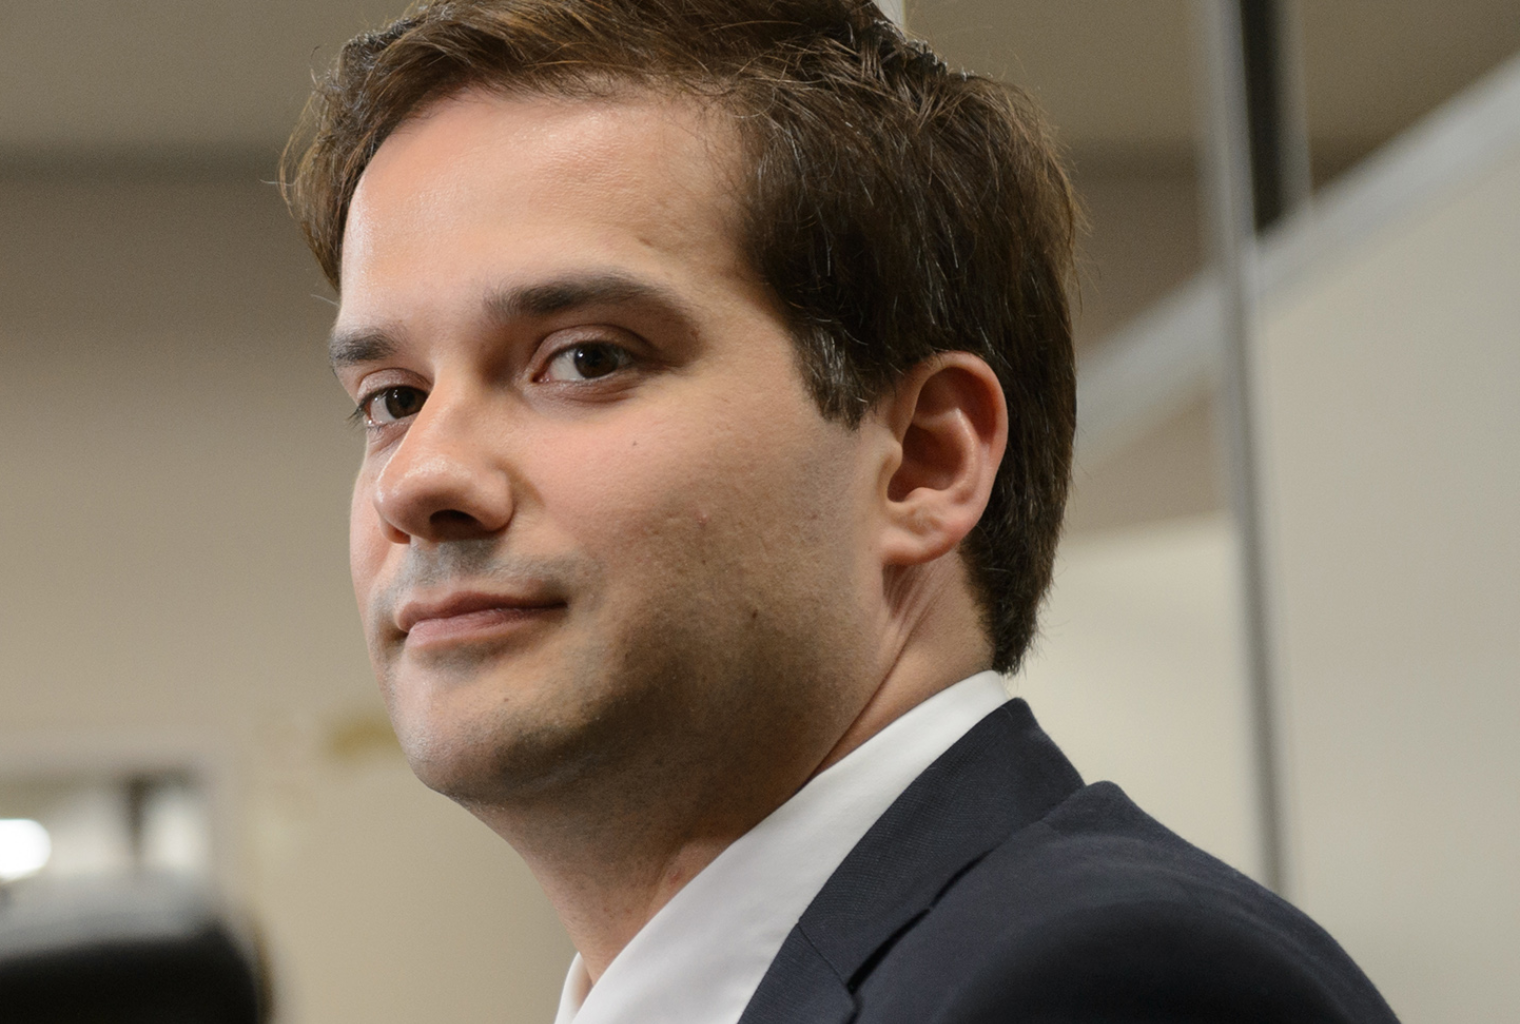 Mt Gox CEO Mark Karpeles Found Not Guilty of Embezzlement - Bitcoin News